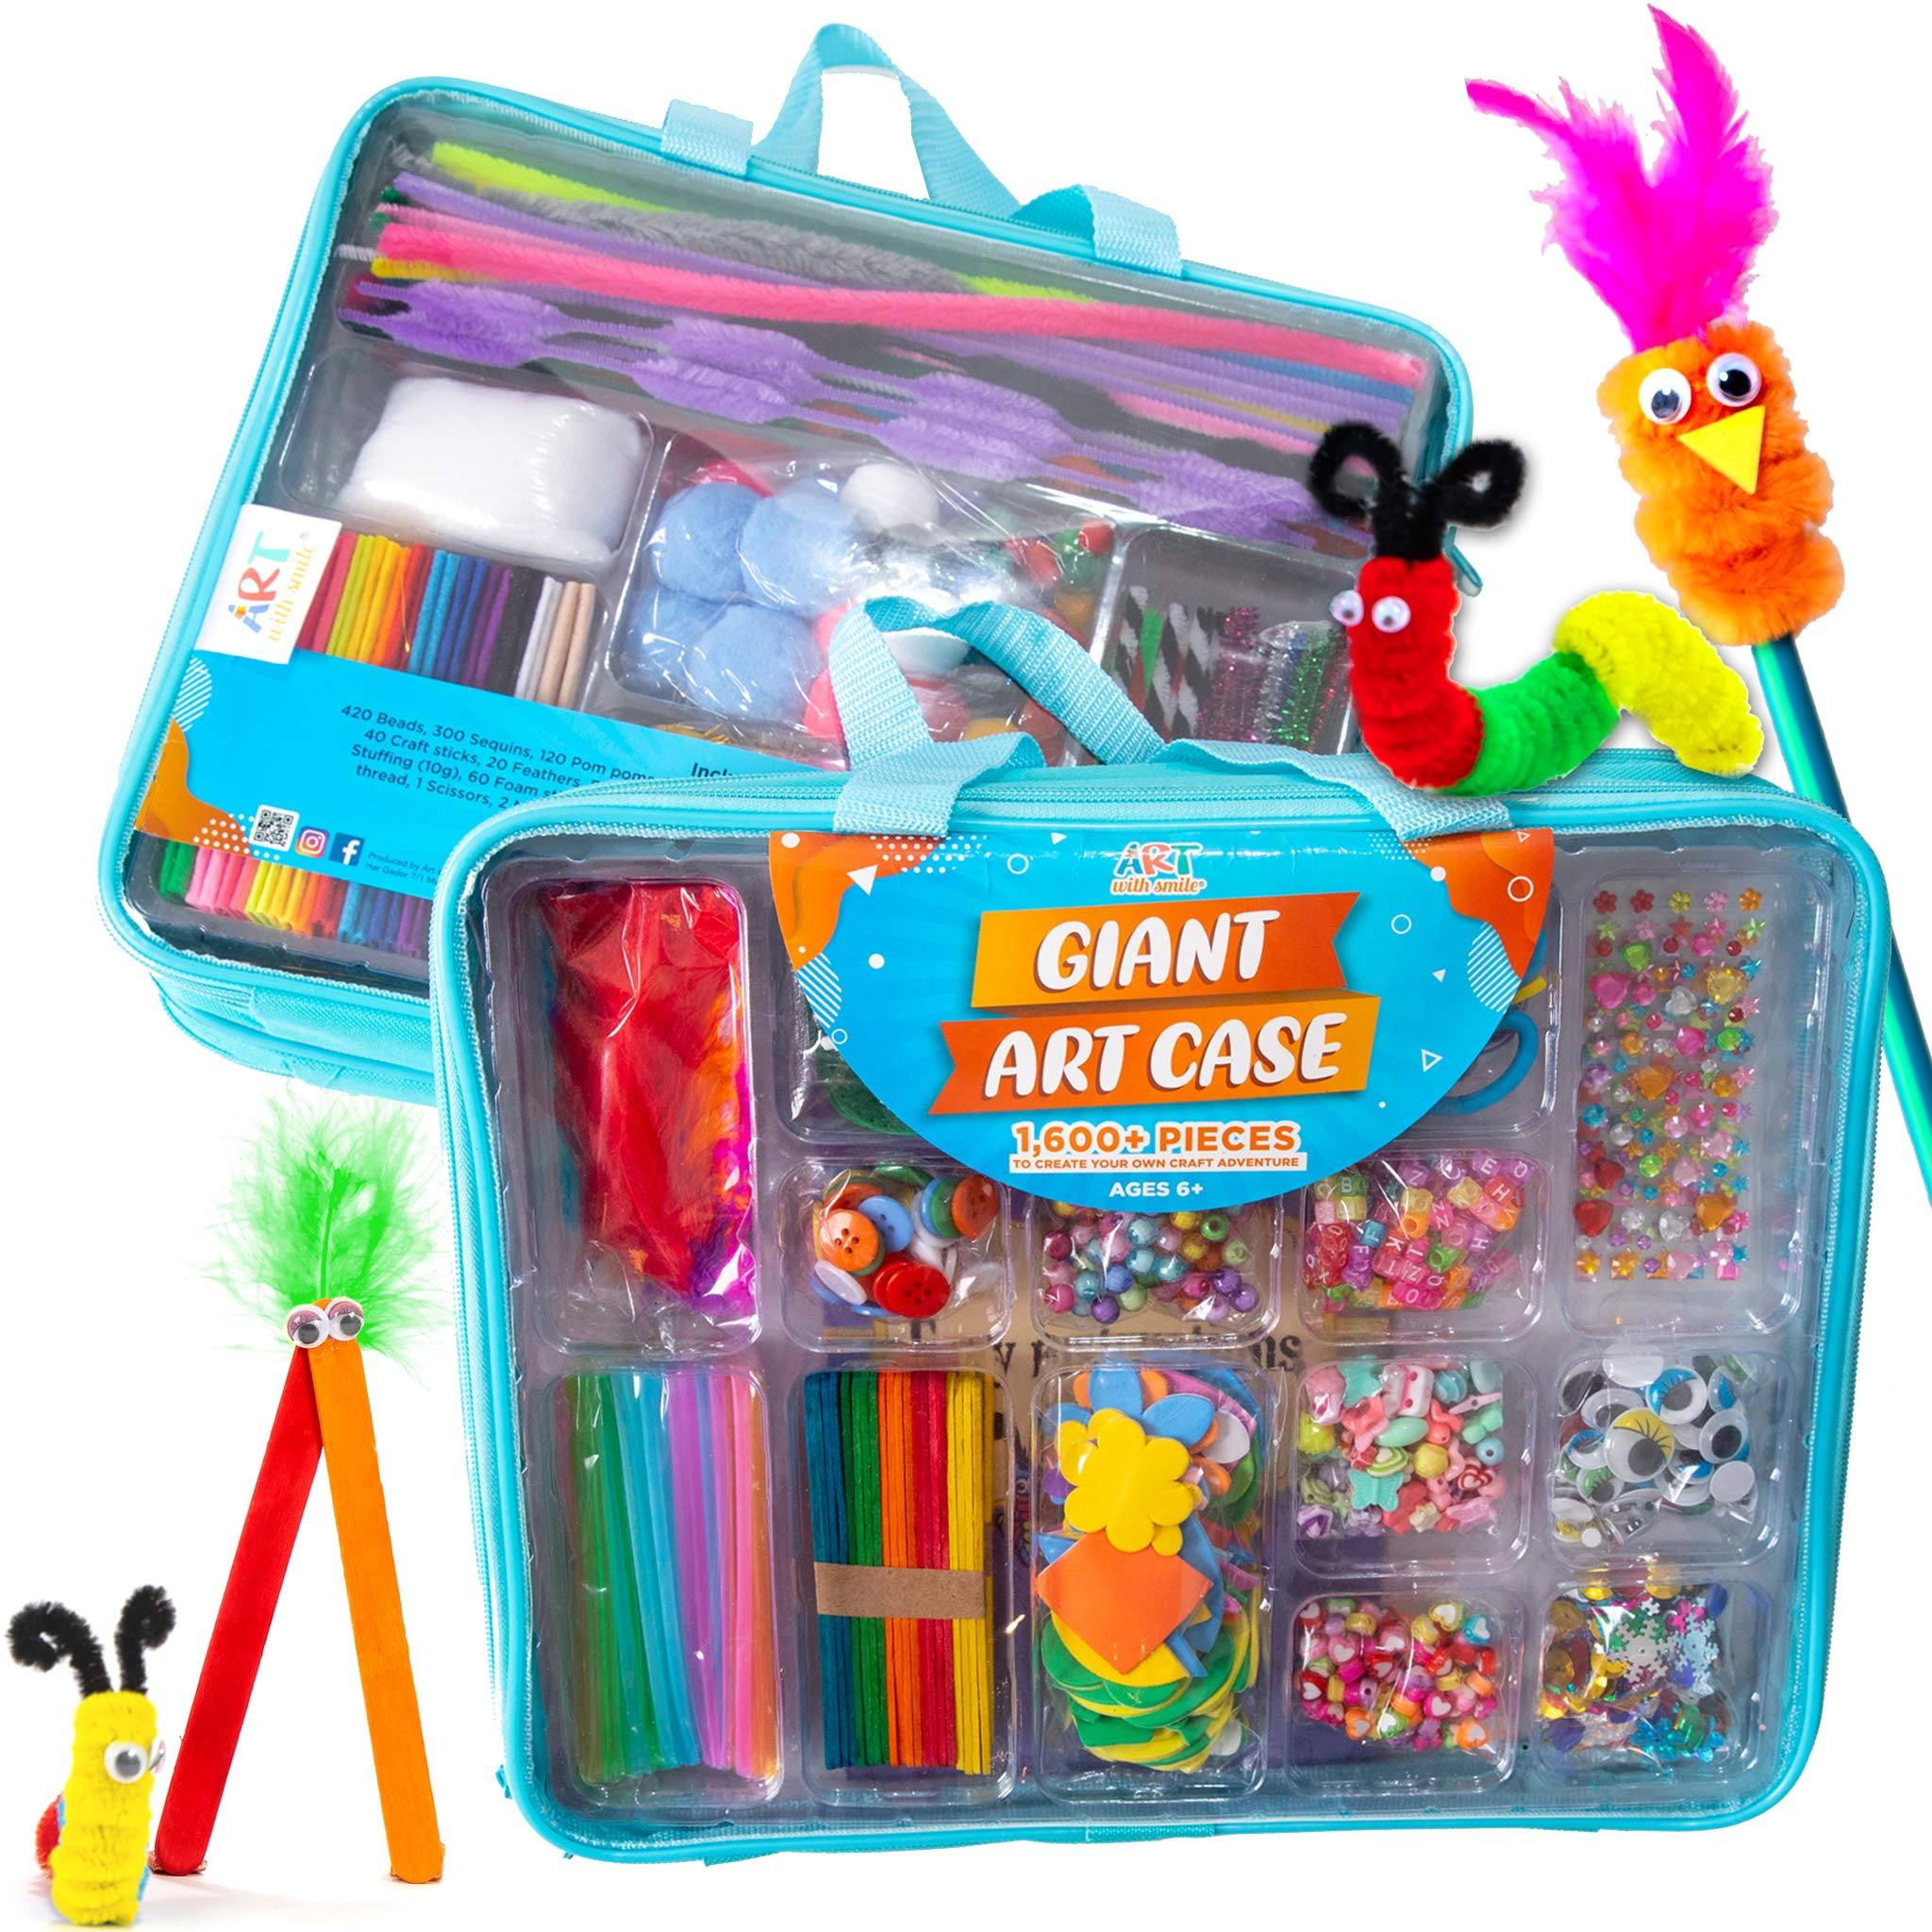 Giant Art Case Set of 1,600+ Pc.– Arts and Crafts Supplies for Kids 6+ – DIY Projects Case Filled with Pom Pom Box Craft Kit, Beads, Buttons, Scissors, and Pipe Cleaners for Kids by Art with Smile